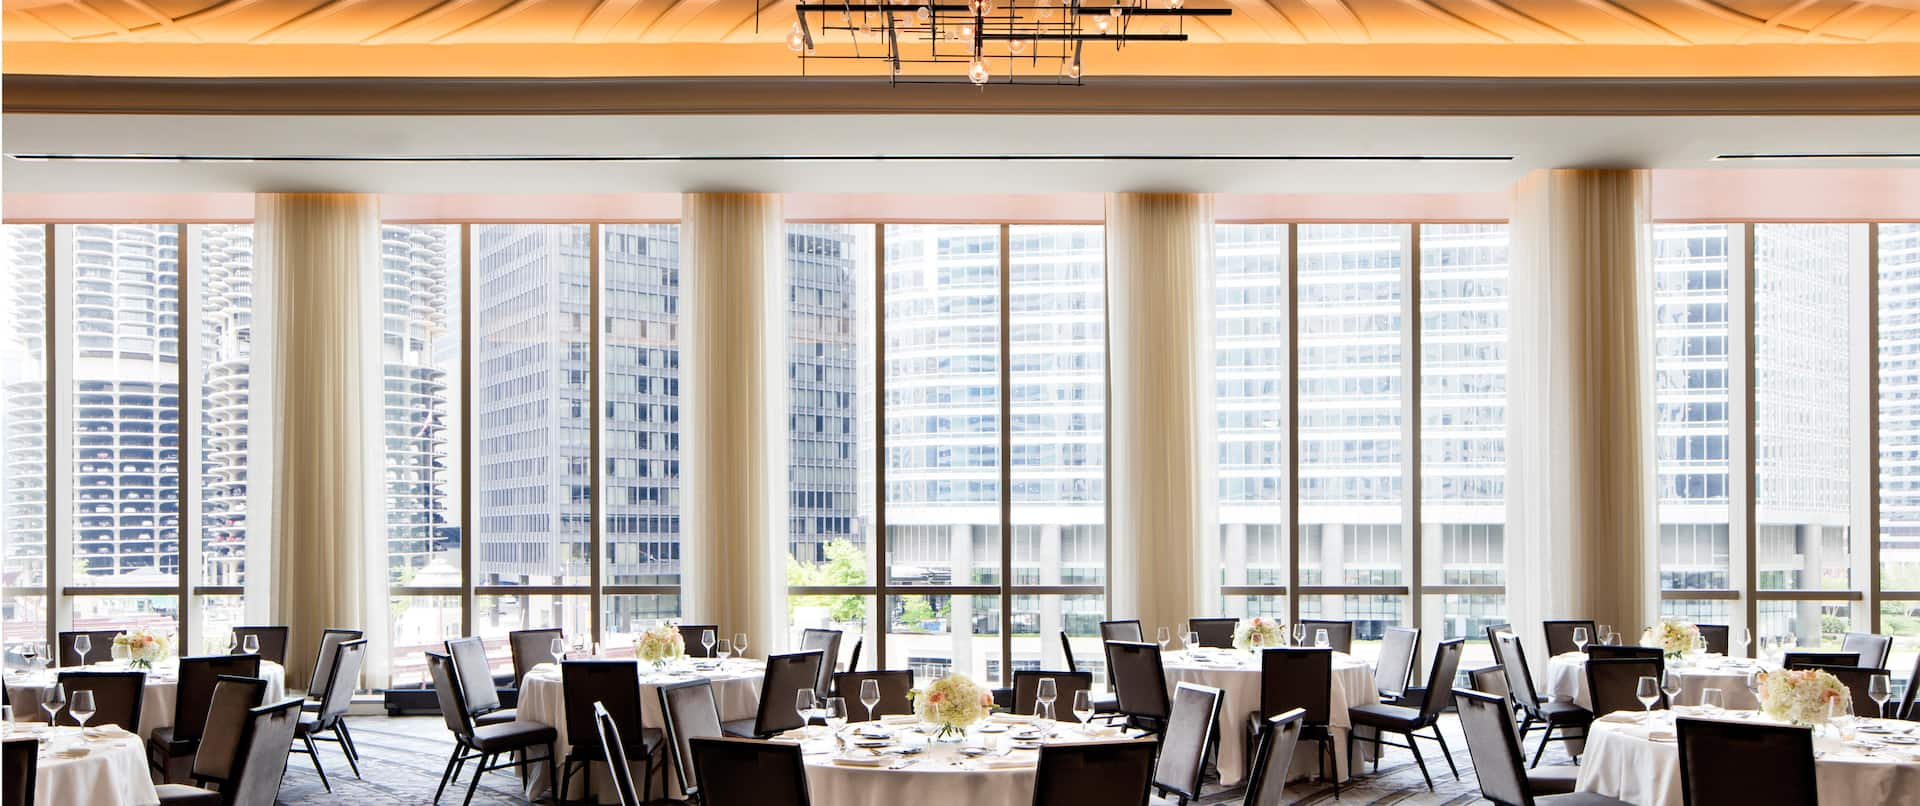 Naturally lit Ballroom Set with Round Tables Showing Designed Ceilings and Columns Near Floor to Ceiling Windows